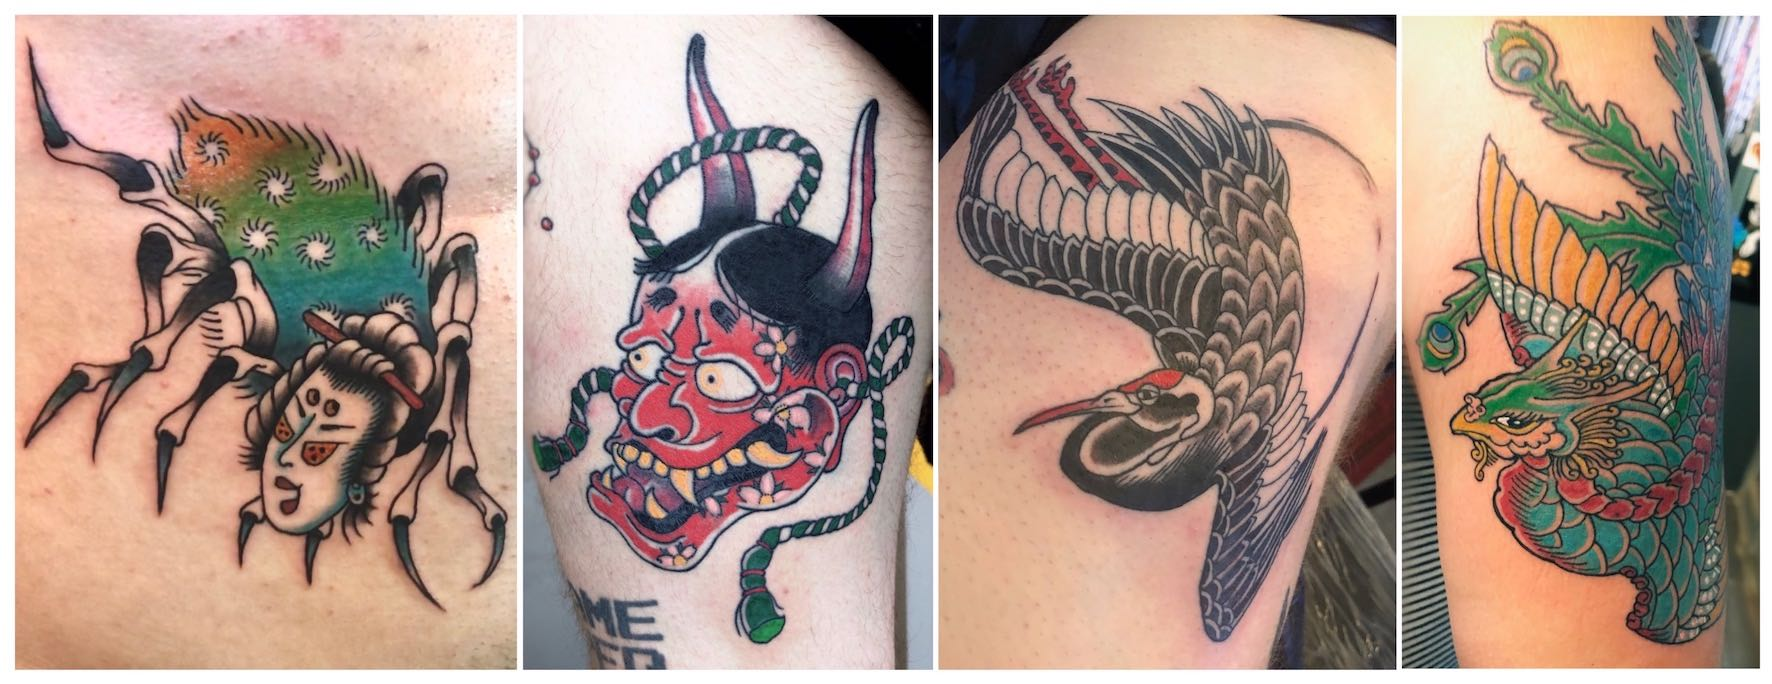 Traditional Japanese tattoos done by Daniel Feinberg